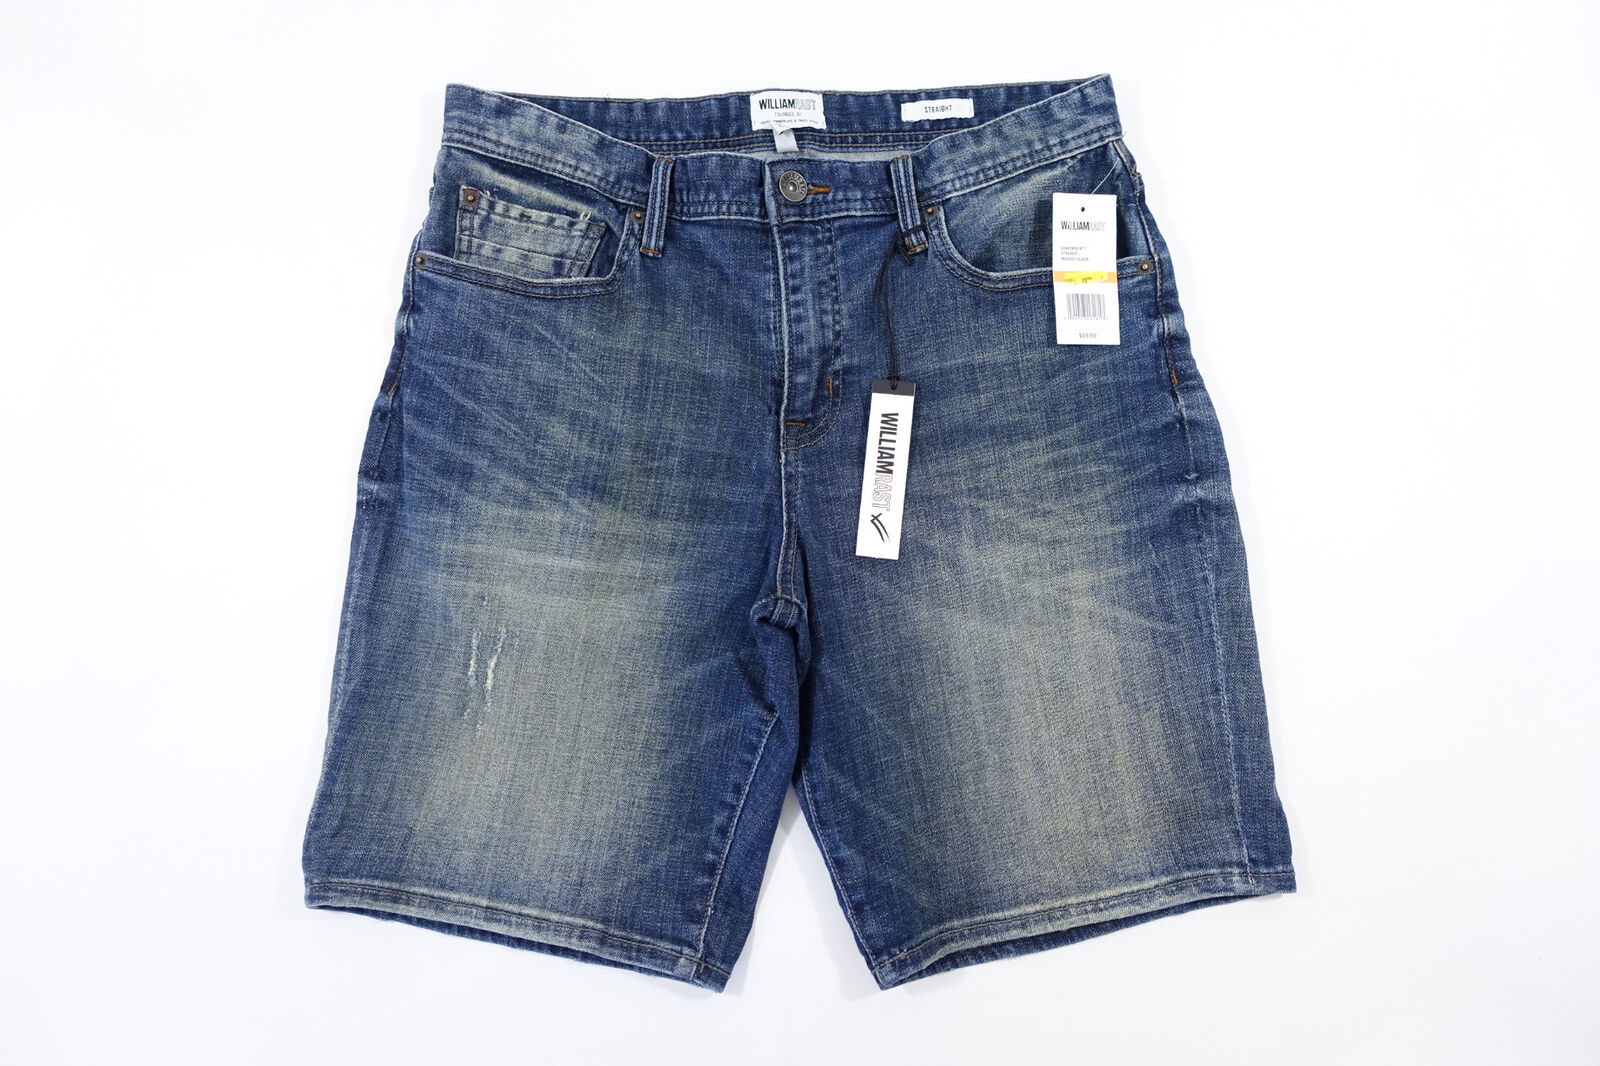 WILLIAM RAST REVVED E2 SERIES FADED 33 DISTRESSED STRAIGHT DENIM JEANS SHORTS